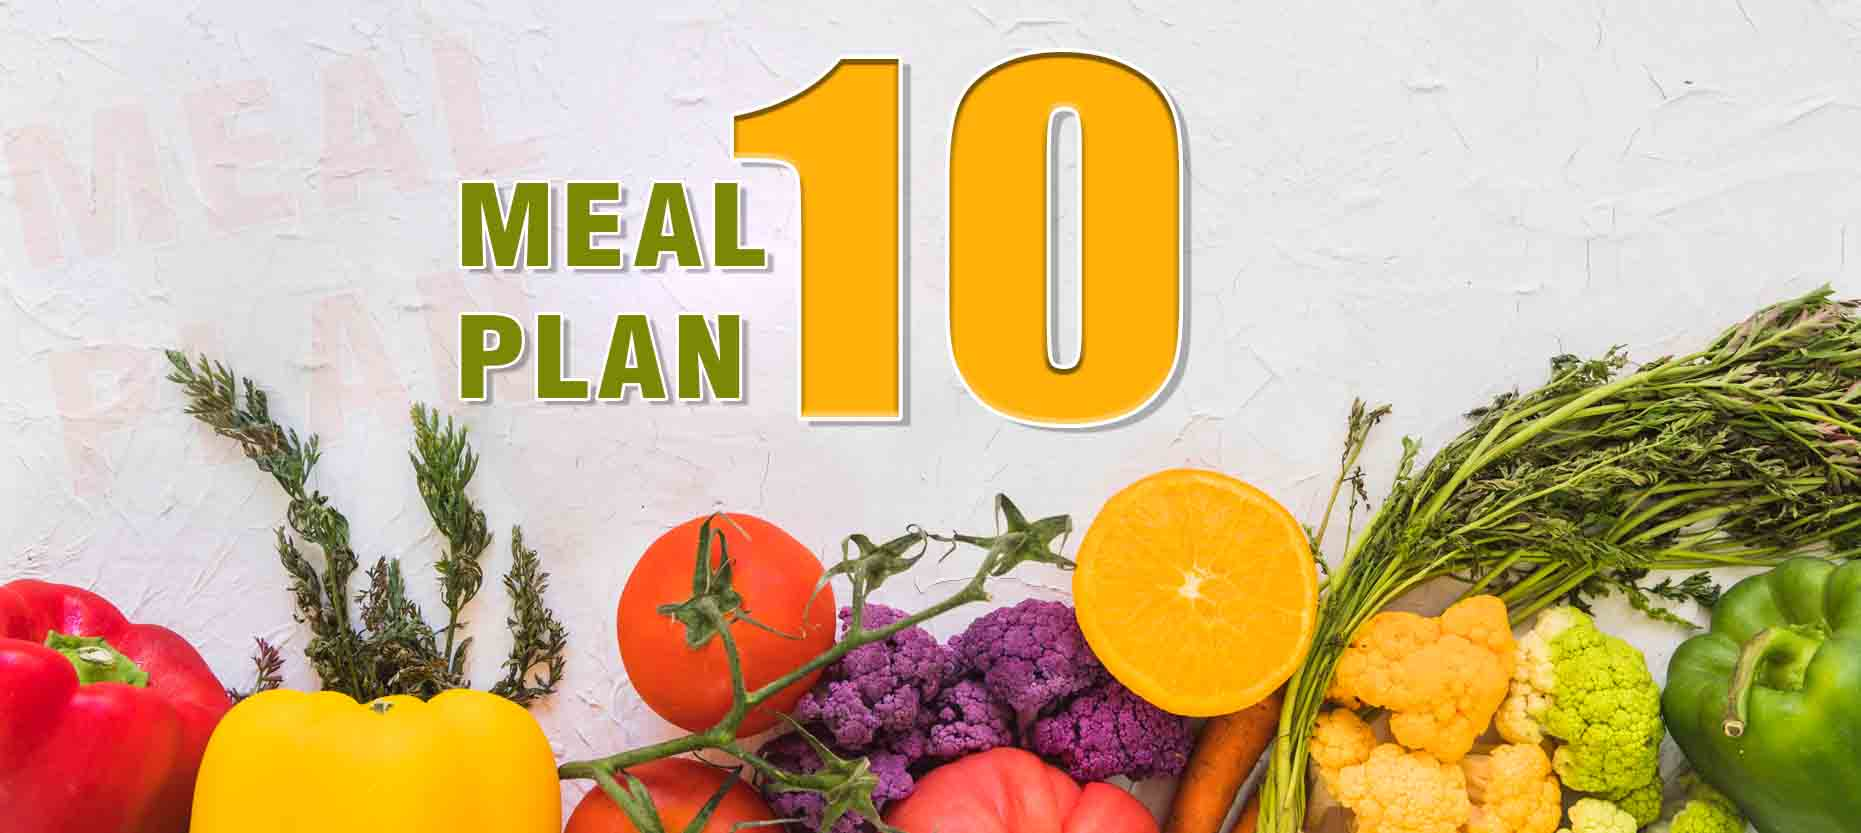 Balanced Sample Meal Plan-10 for Healthy Individuals